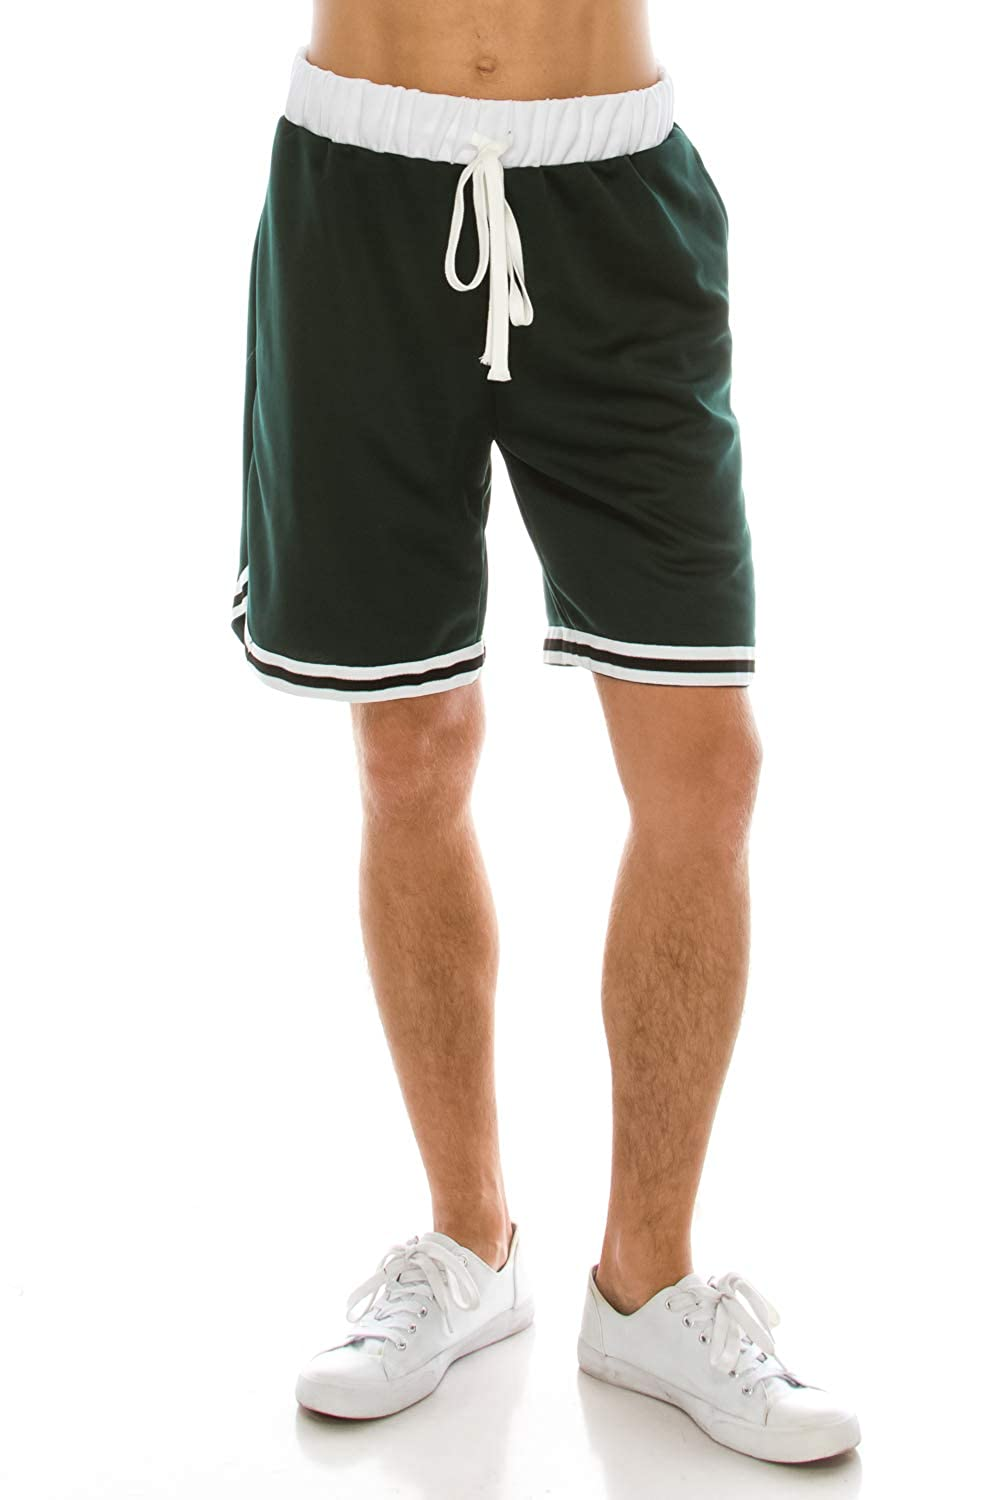 M WISHICAN Mens Athletic Vintage Jersey Shorts in Green with Black and White Accents